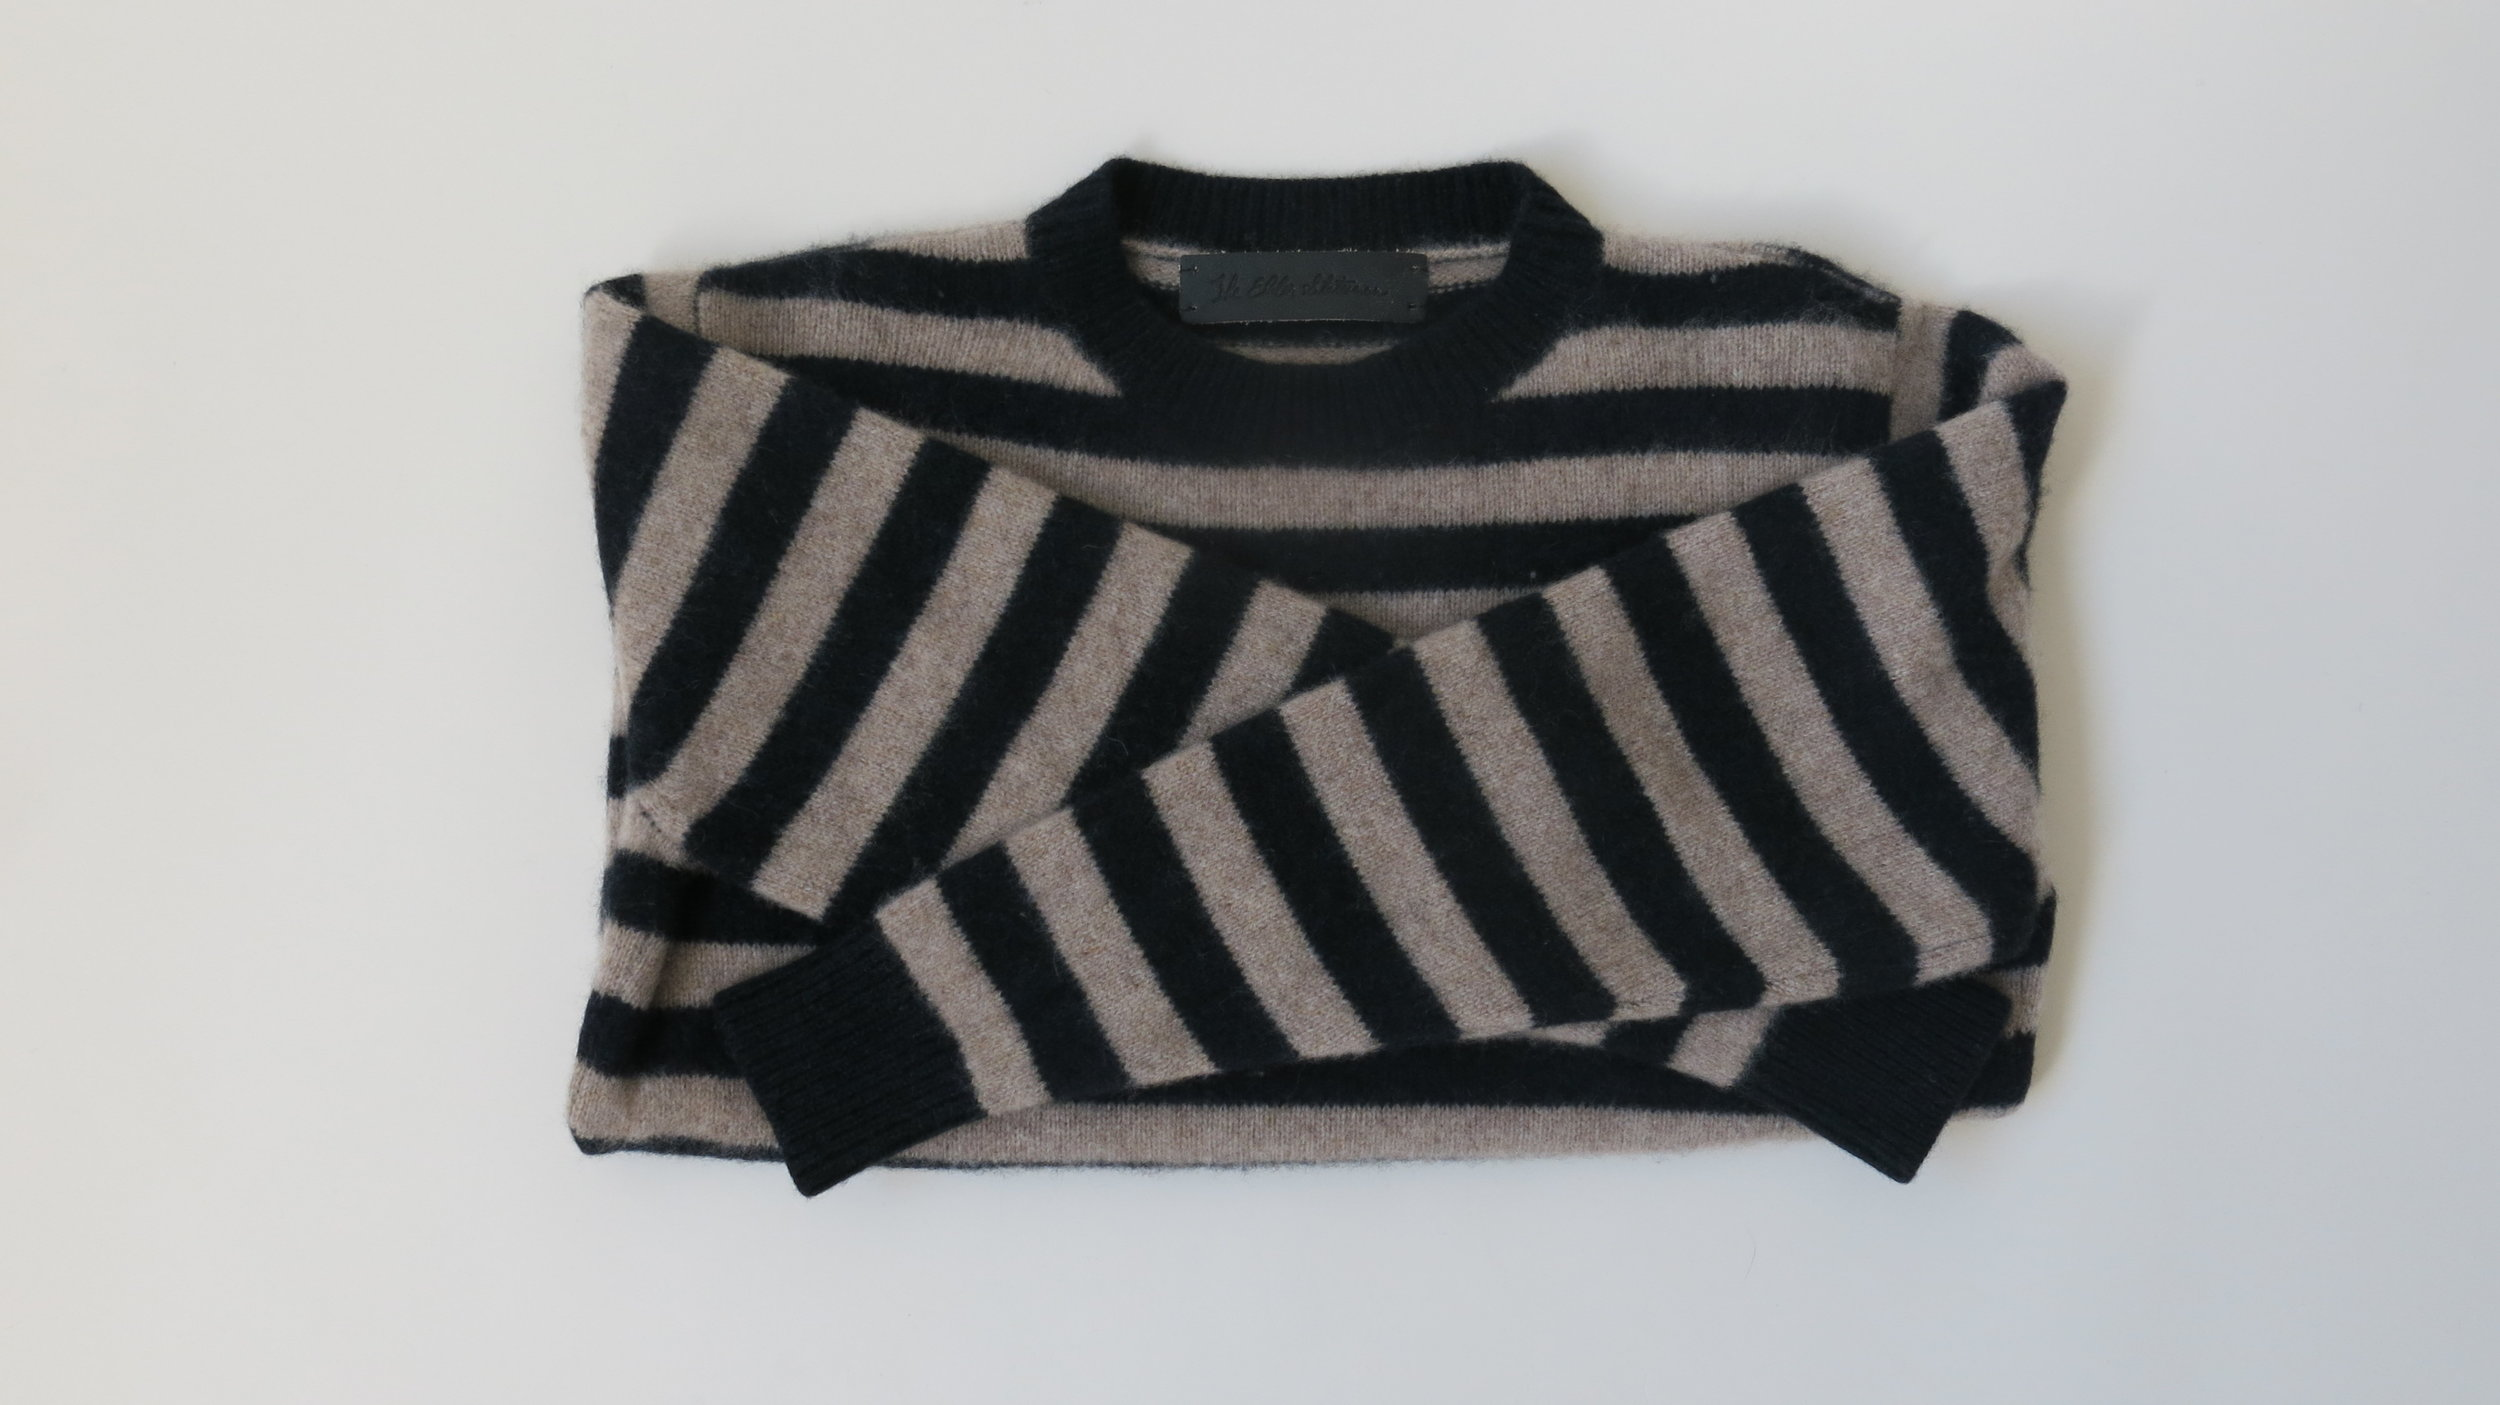 The Elder Statesman  is a mastermind of Cashmere goodies. Everything in his West Hollywood store is to die for, and I was lucky enough to find this gem wrapped up for me under the tree. It's an investment piece, but will offer up years of super soft gorgeousness. Similar Style  here